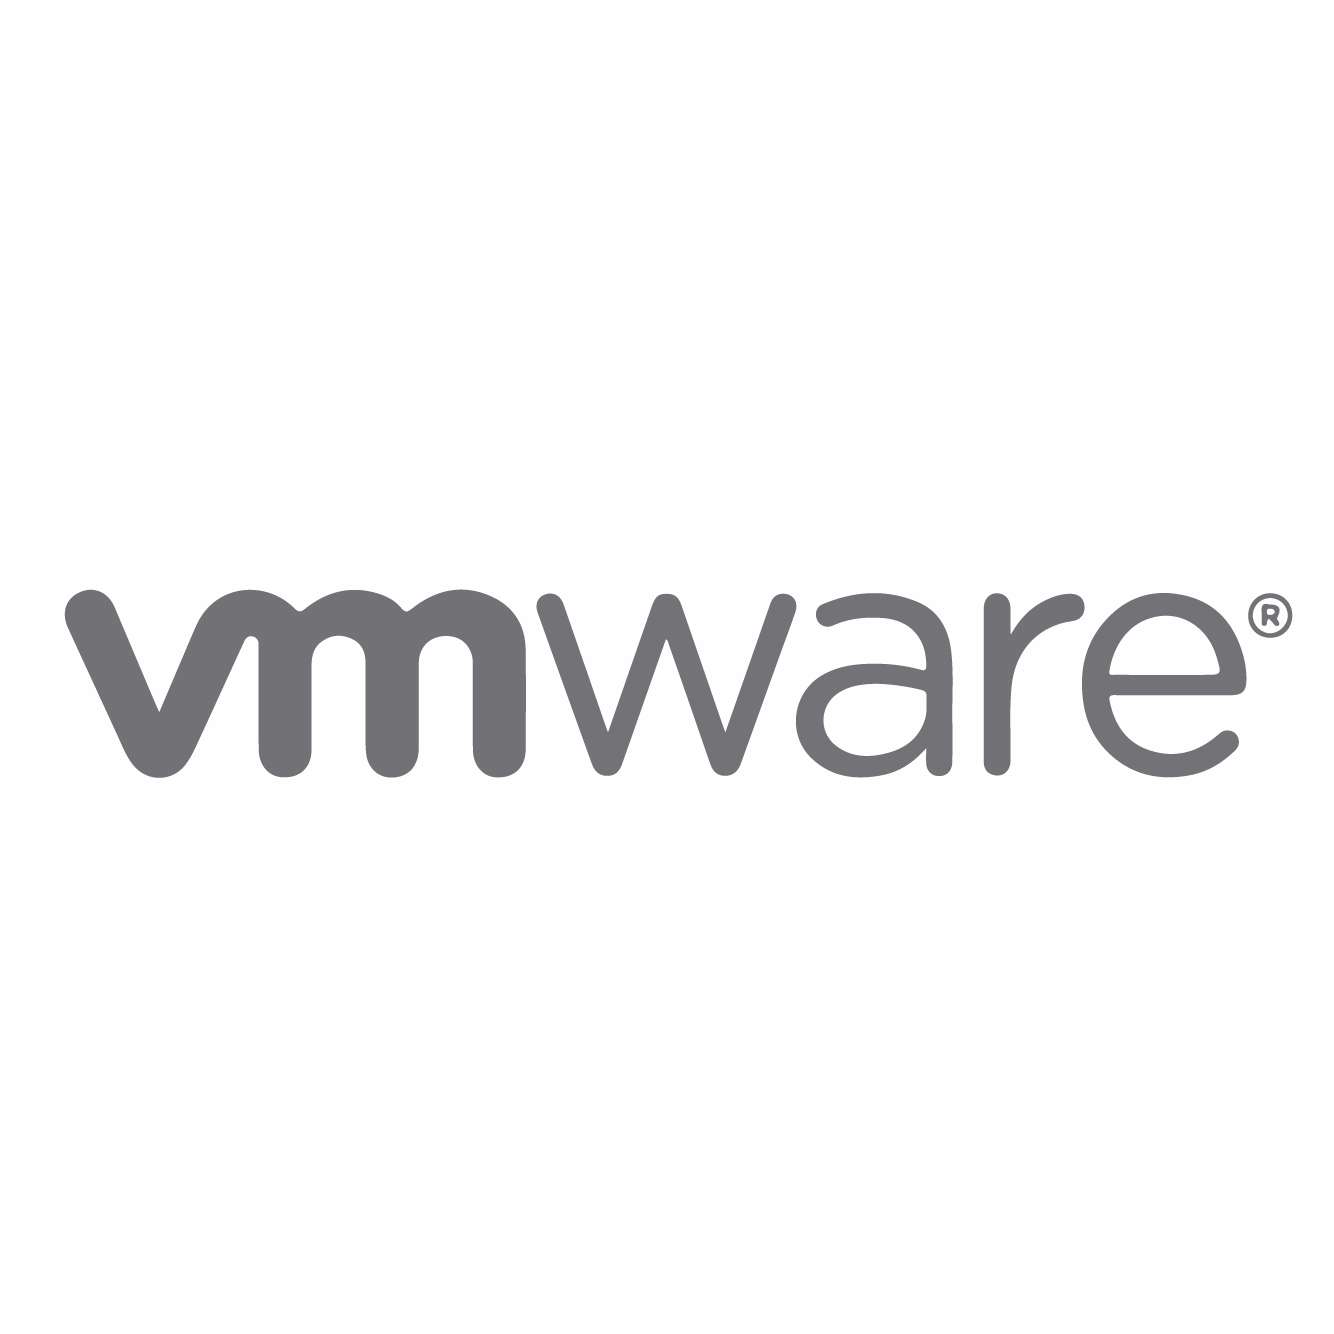 https://www.securetech.ae/wp-content/uploads/2019/02/11.VMWARE.png